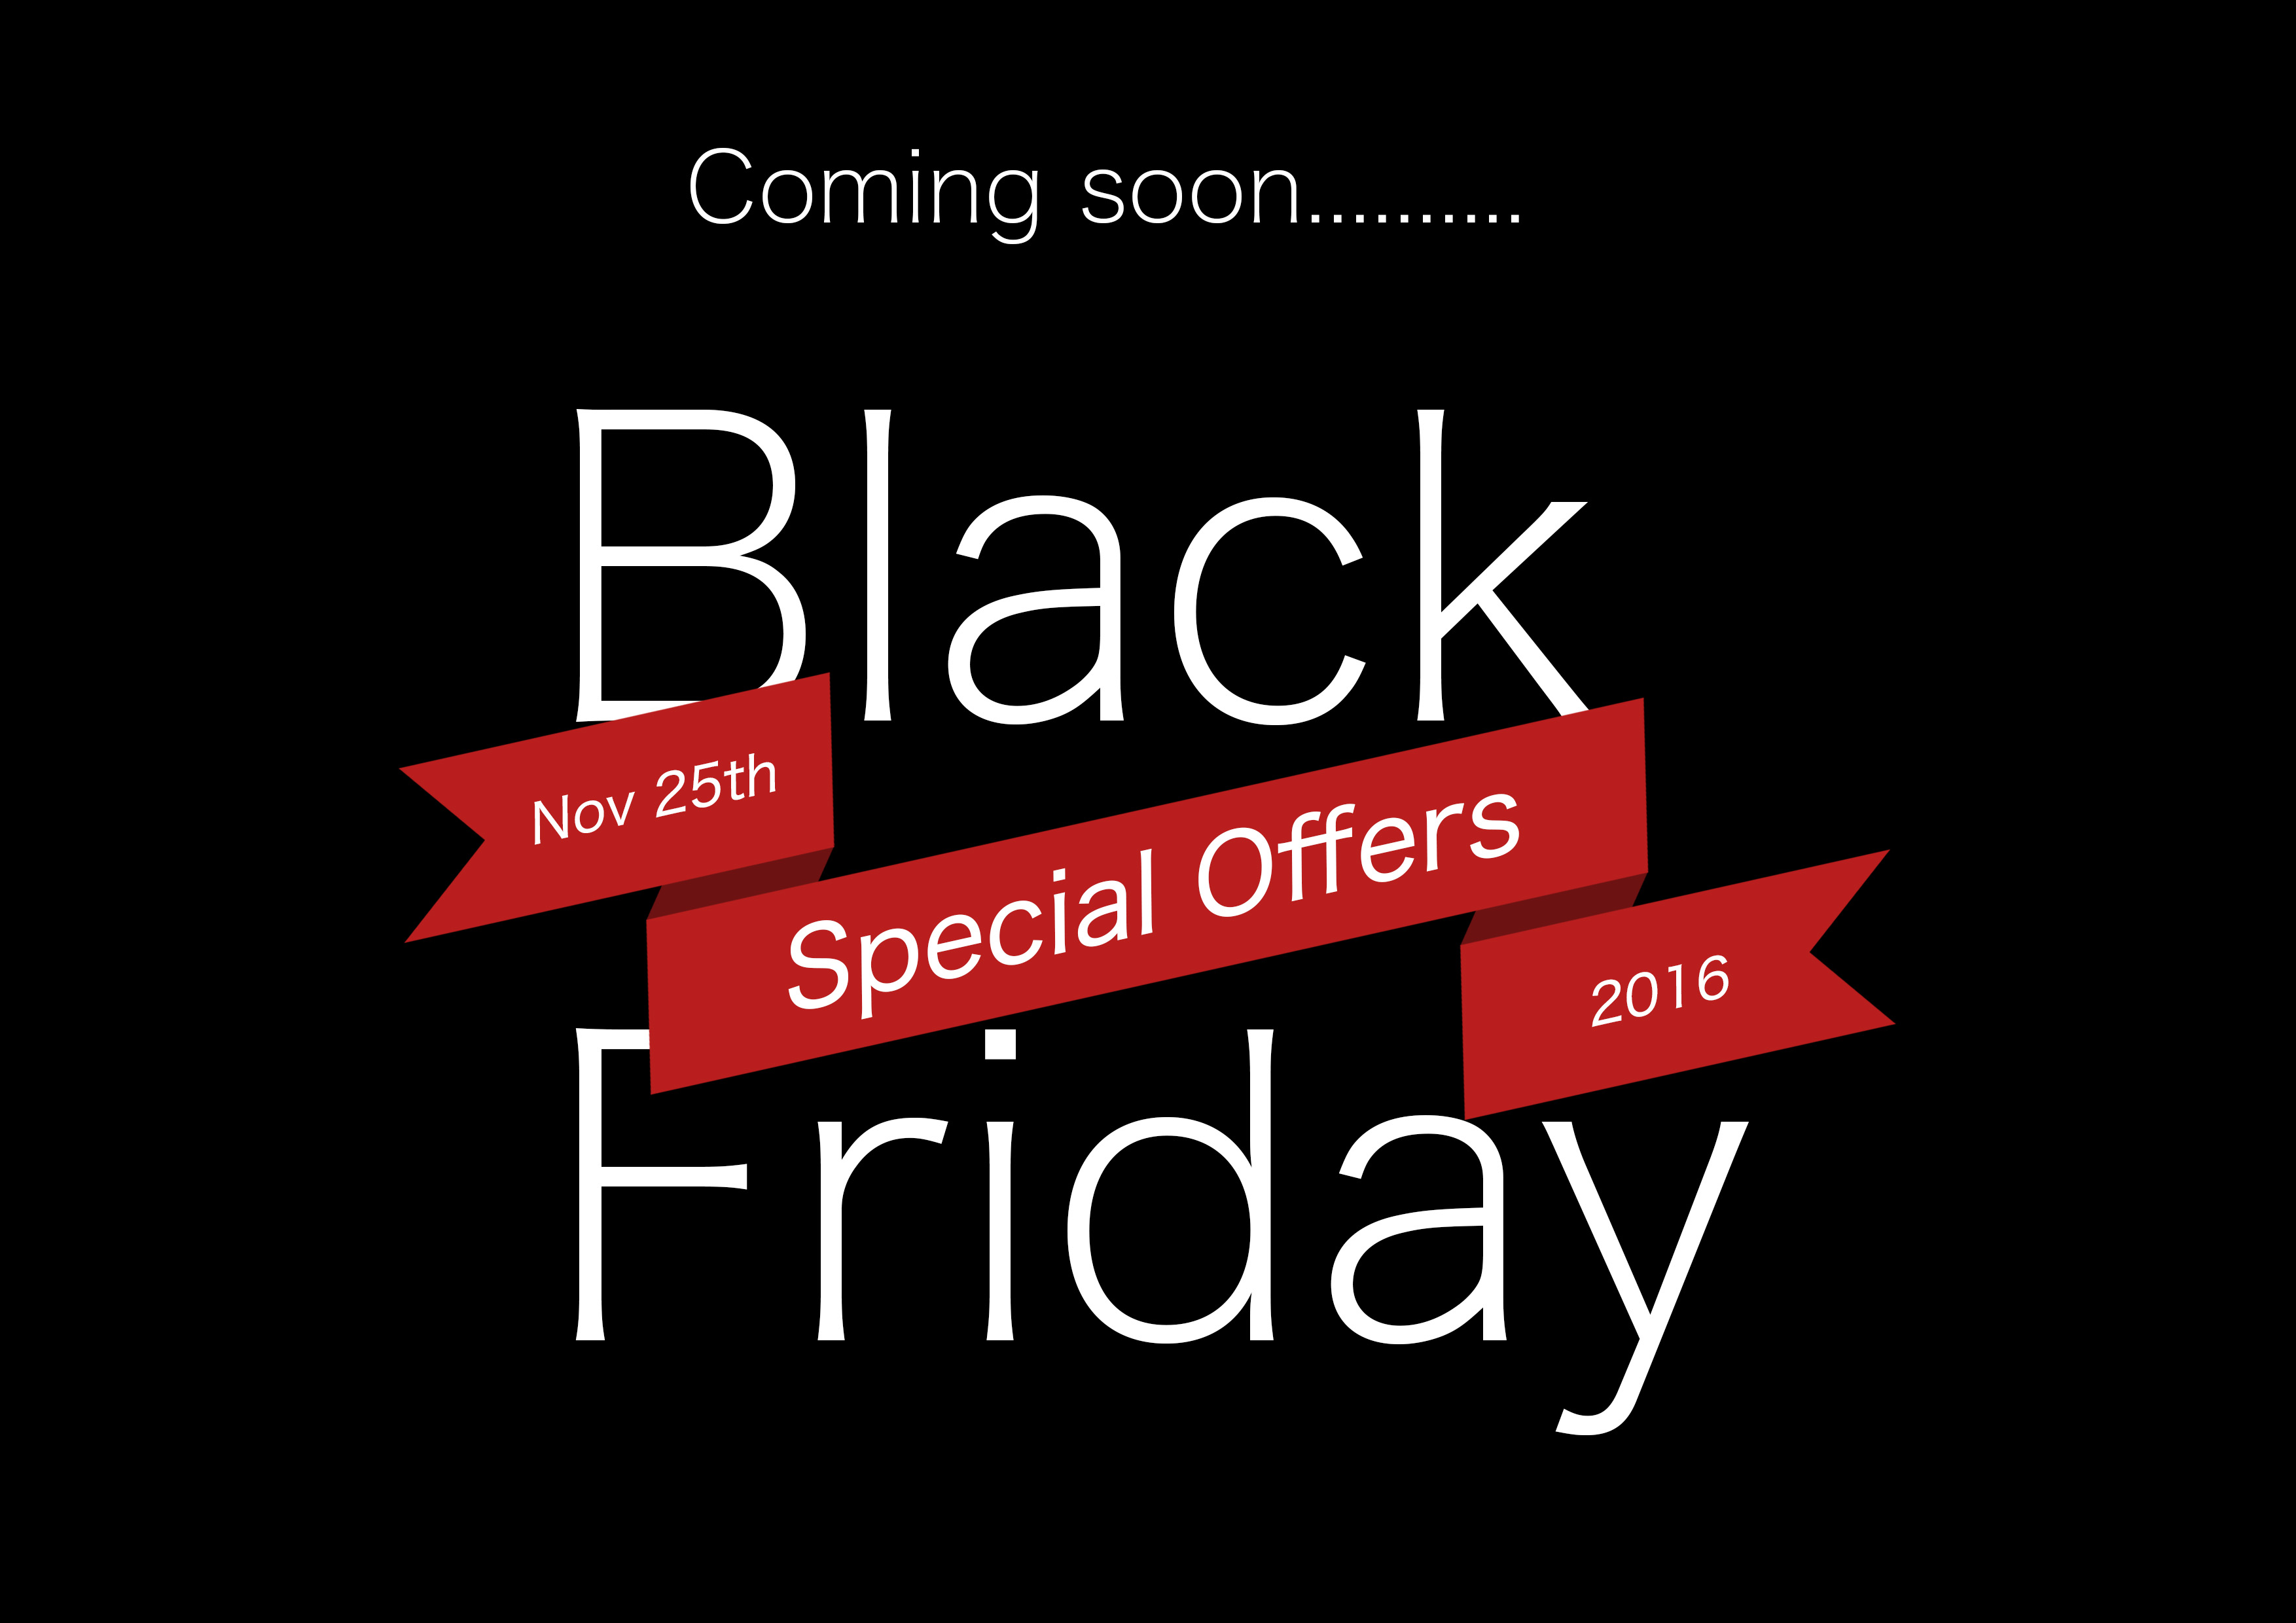 Black Friday 'Special Offers'.......coming soon!